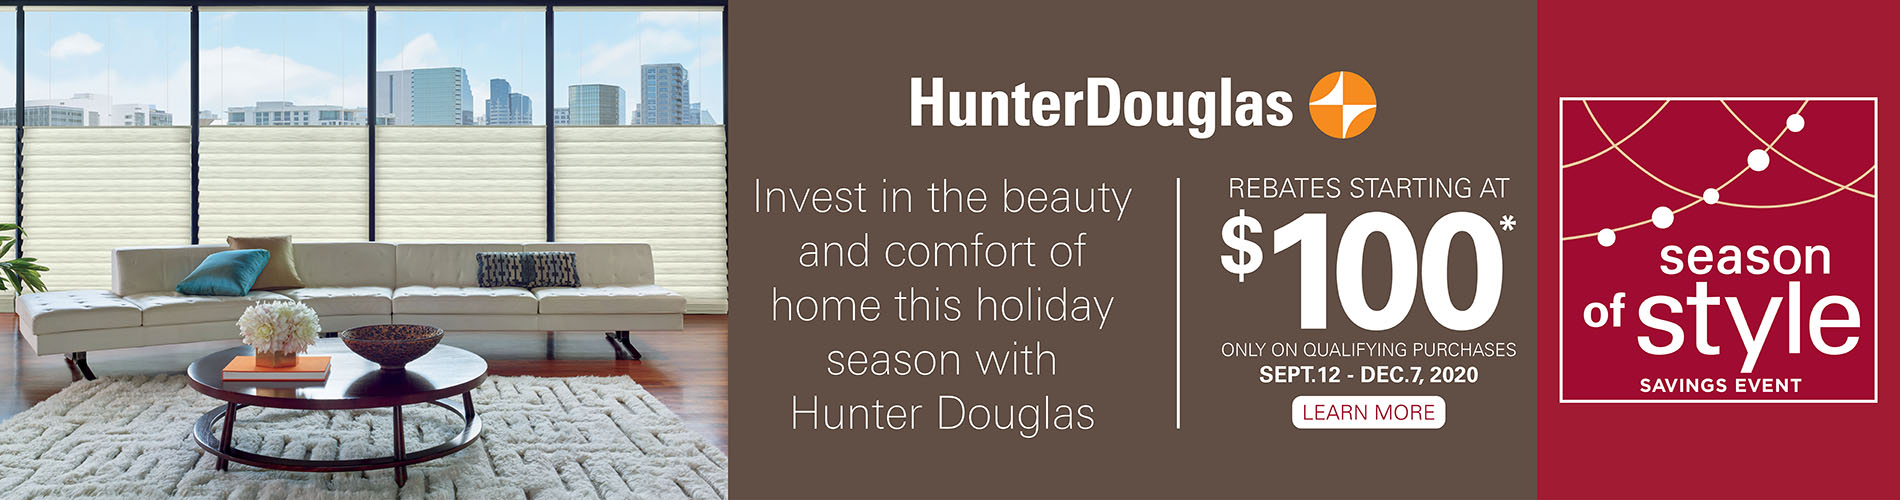 Hunter Douglas Window Treatment Sale at Arvid's Interiors in Chehalis, WA